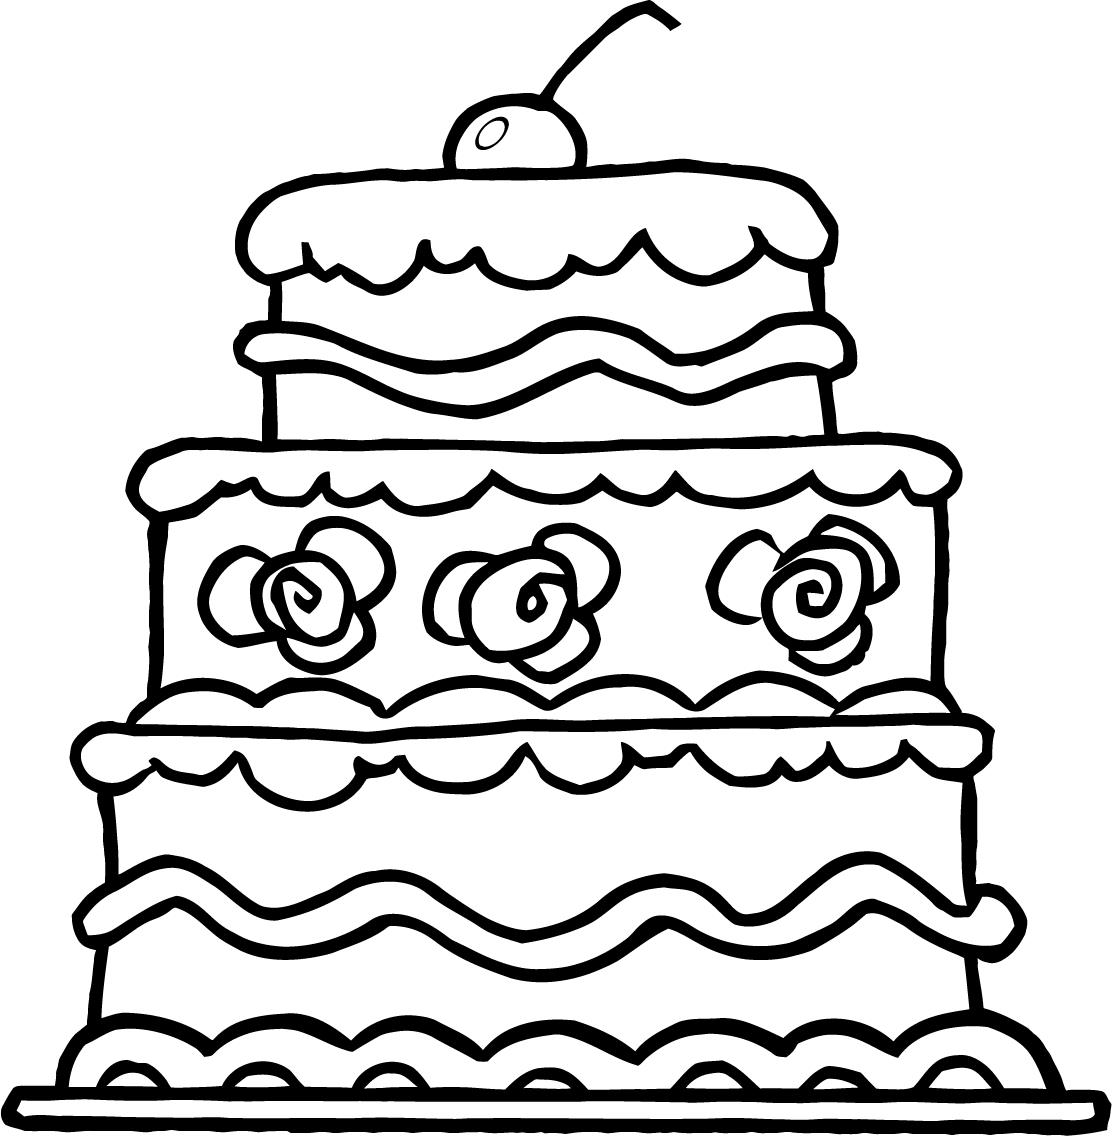 Cake Coloring Pages To Download And Print For Free